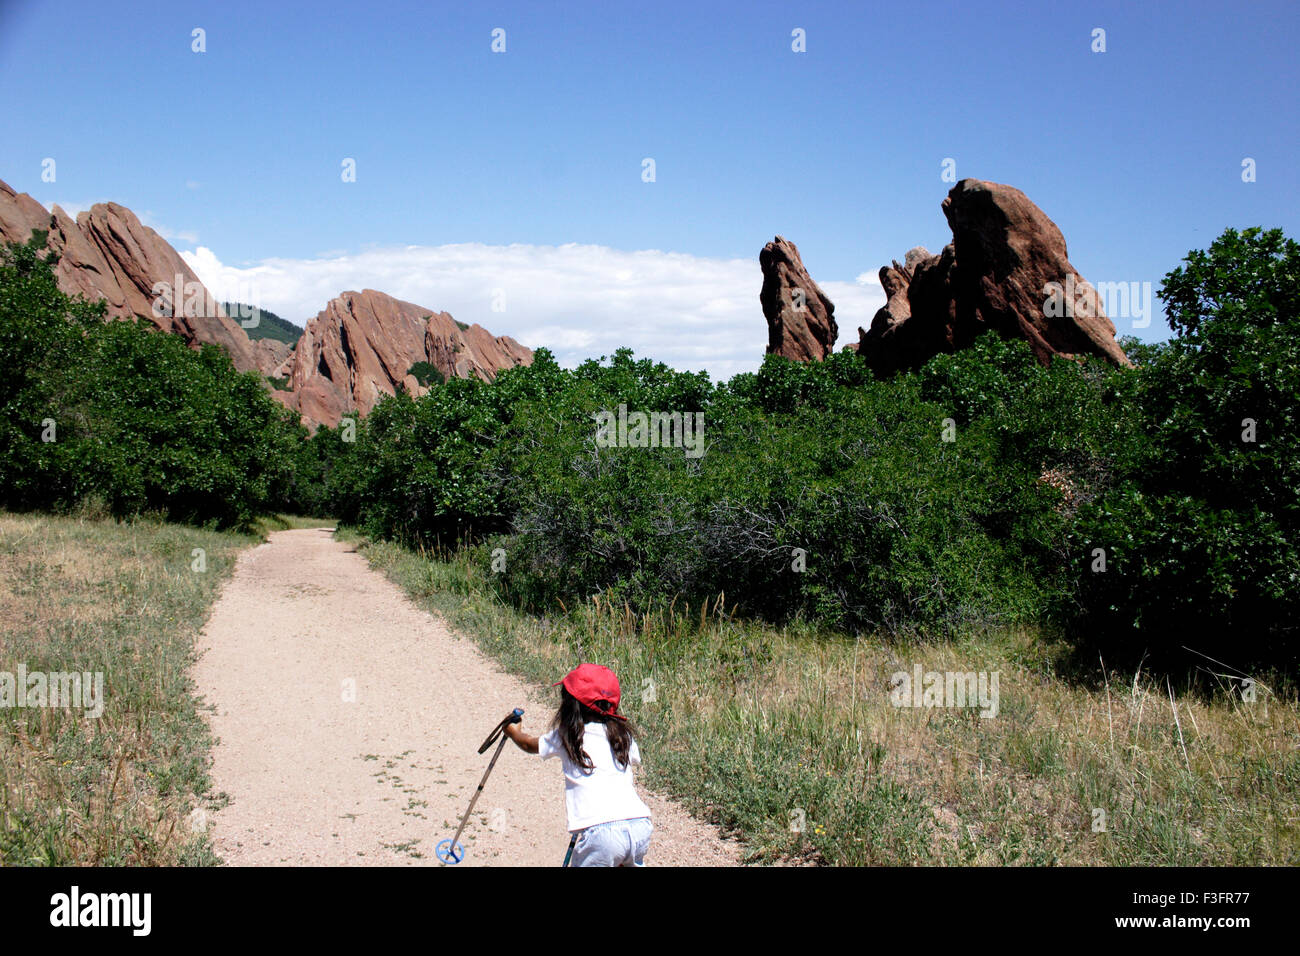 Three year old girl wants to reach top of hill MR#0543 - Stock Image